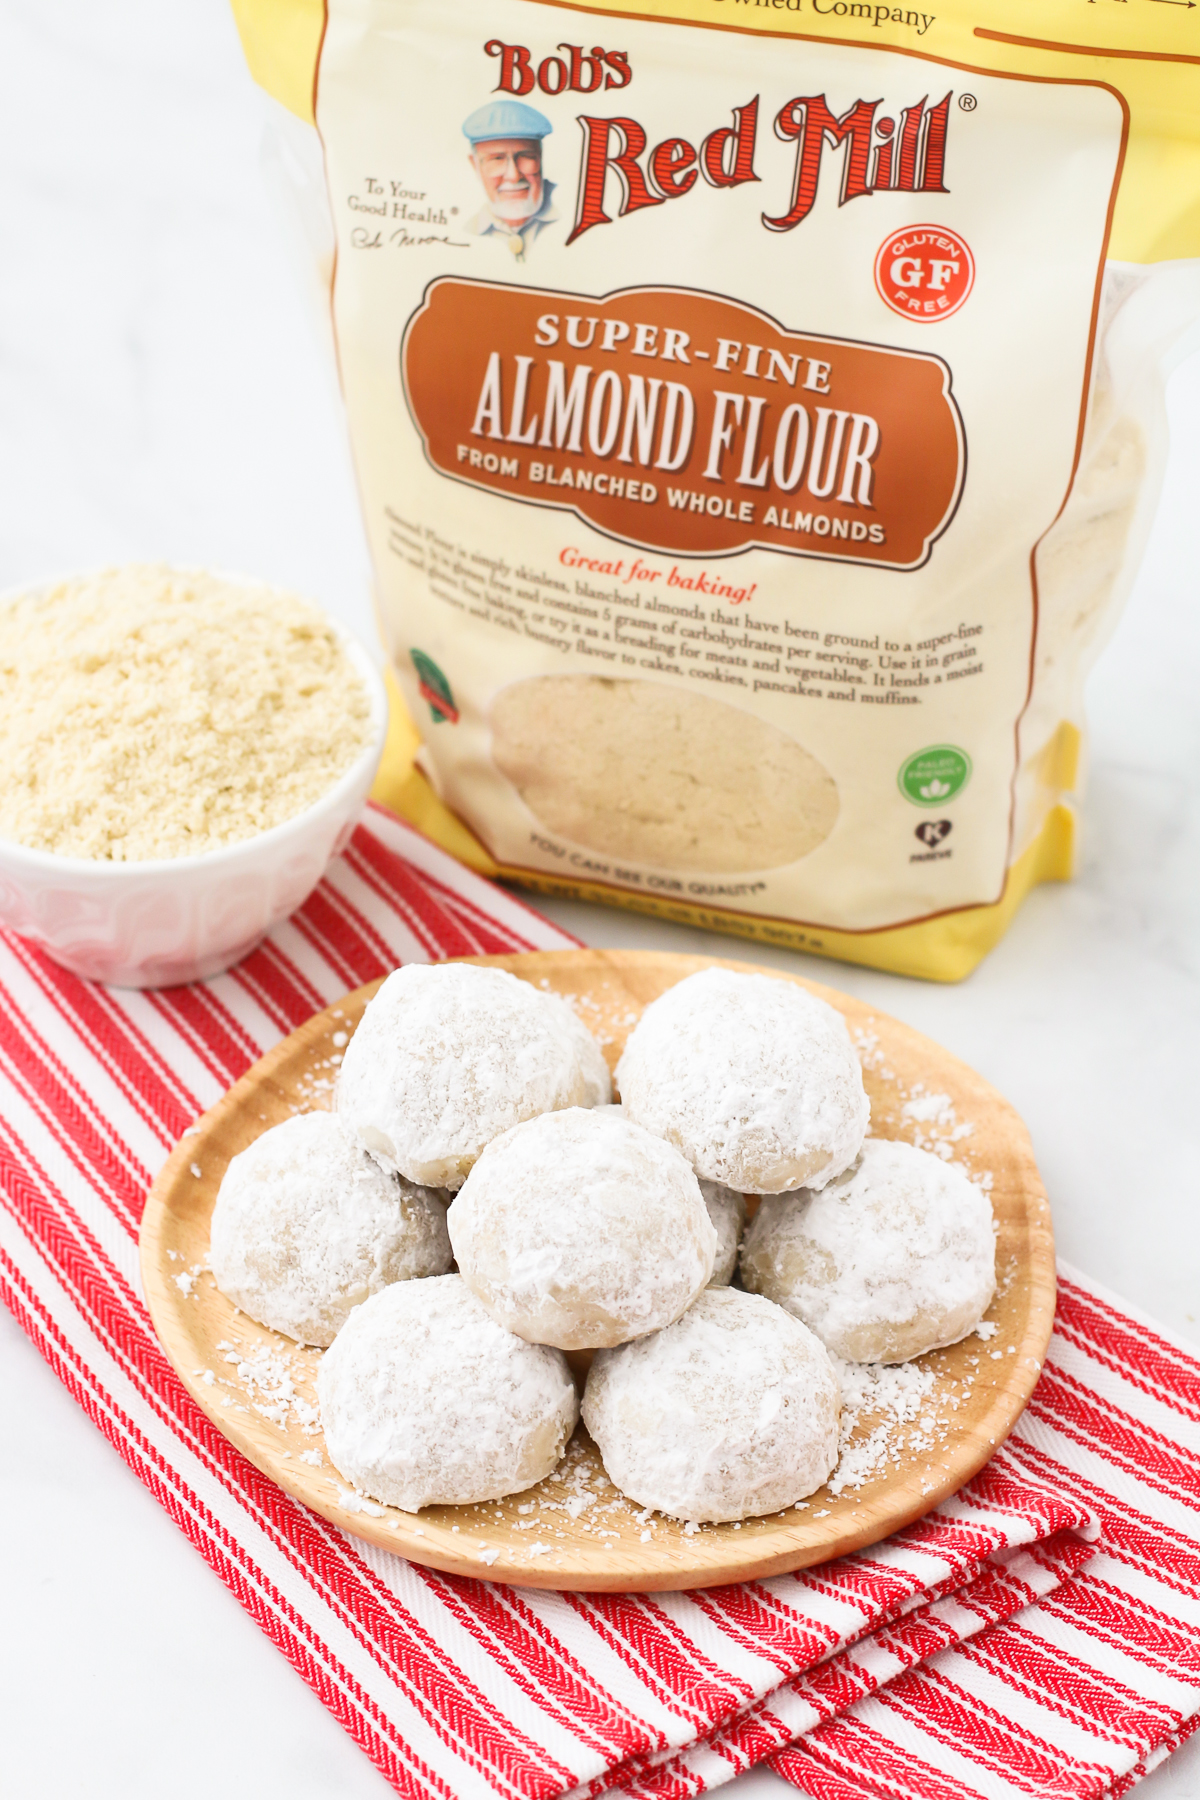 Gluten Free Vegan Snowball Cookies. These buttery, simple cookies are made with Bob's Red Mill almond flour and toasted walnuts. Festive and flavorful!